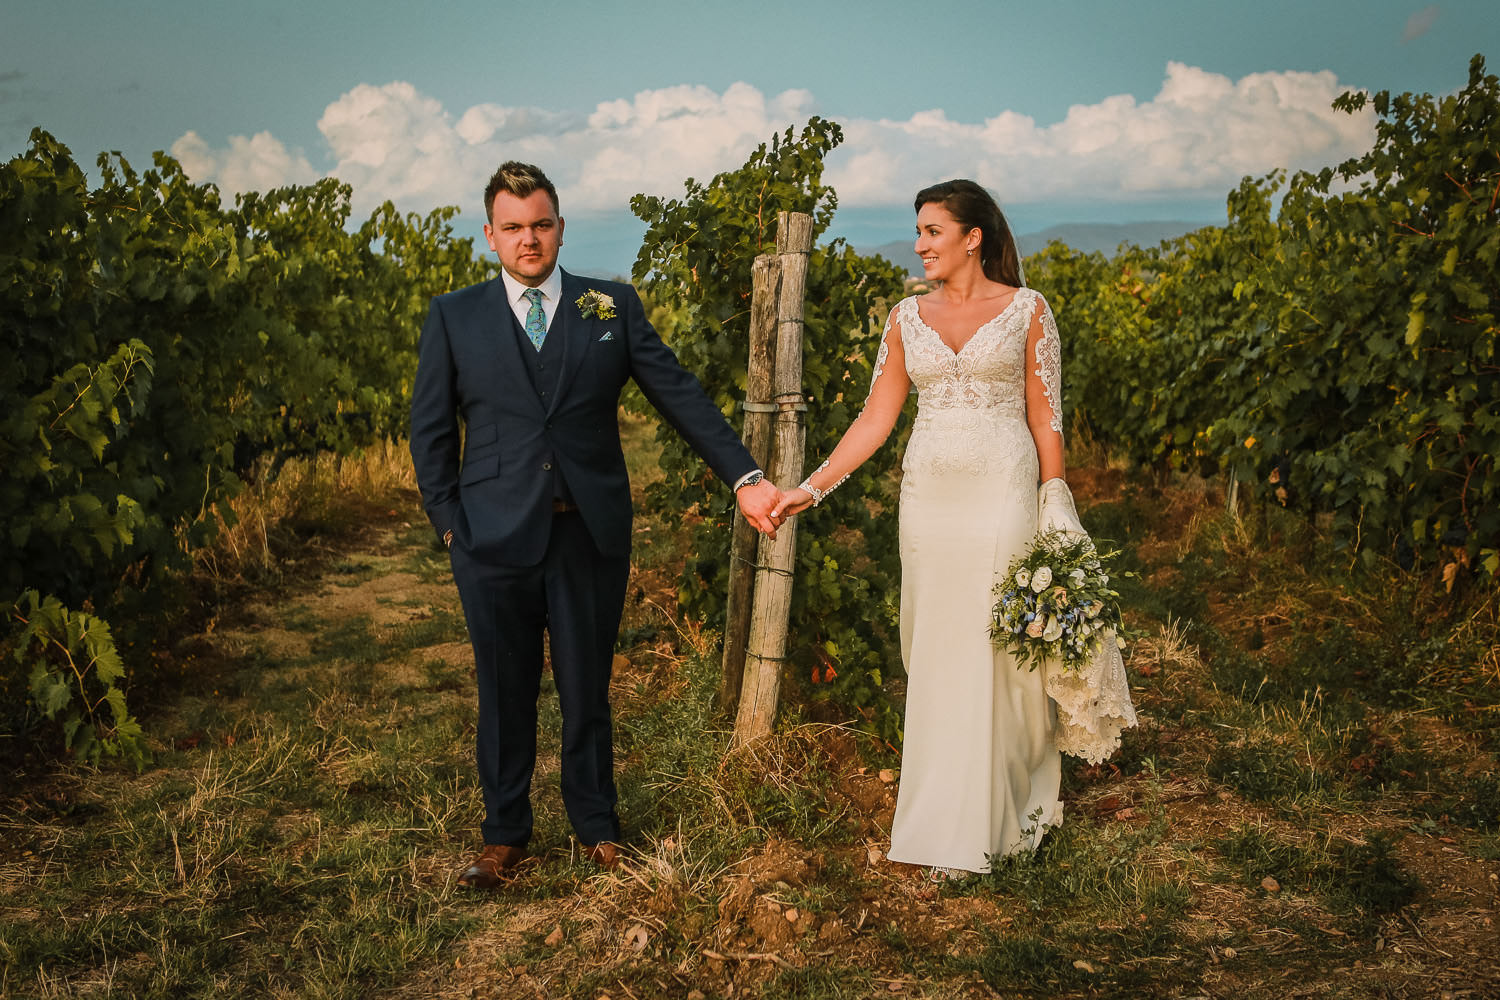 Bride and Groom holding hands in Vine Yards of Tuscany during wedding at Fattoria la Loggia